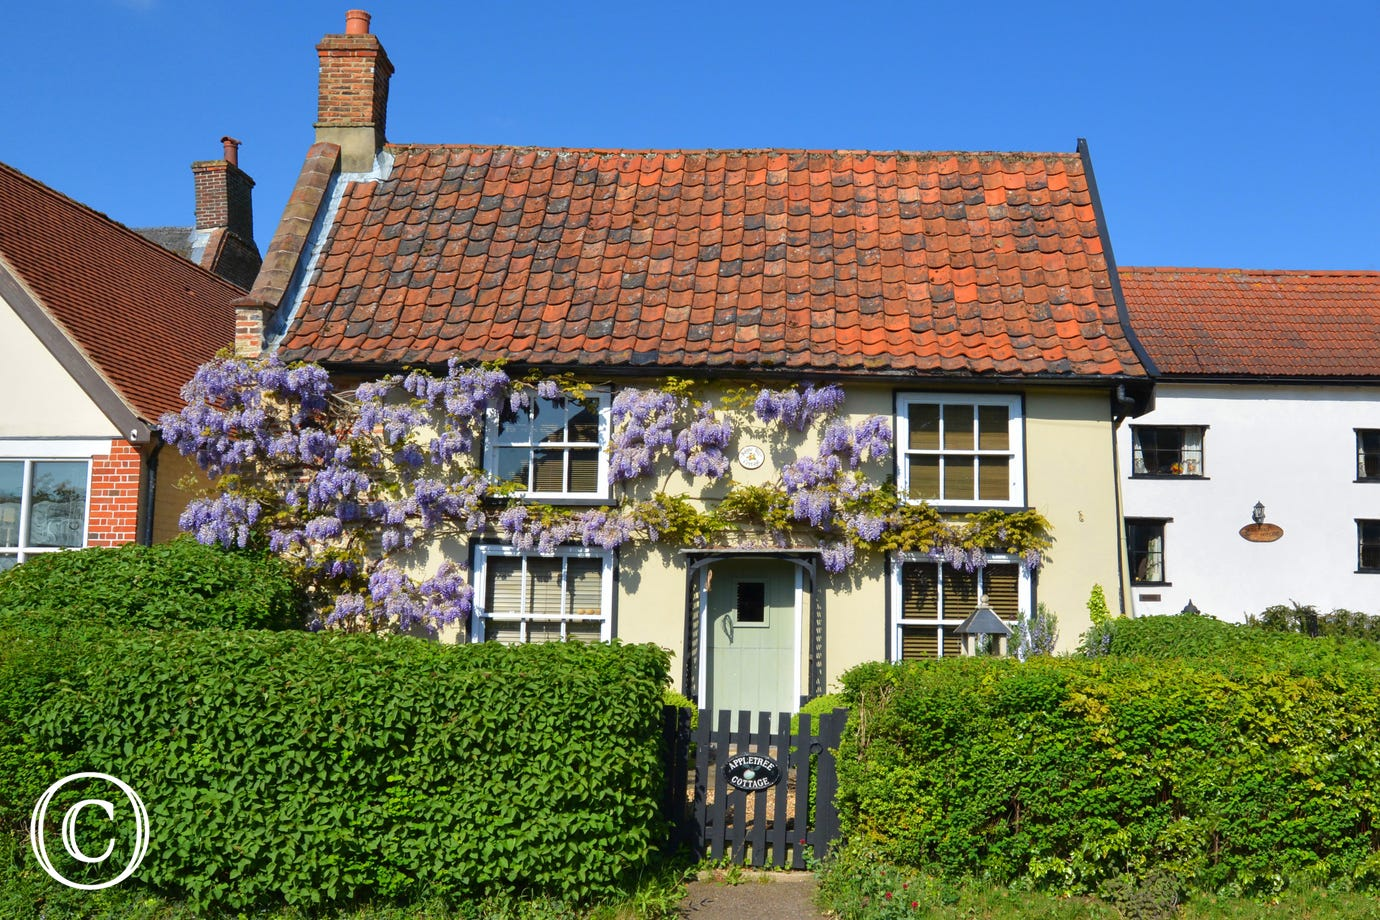 Characterful exterior of Apple Tree Cottage